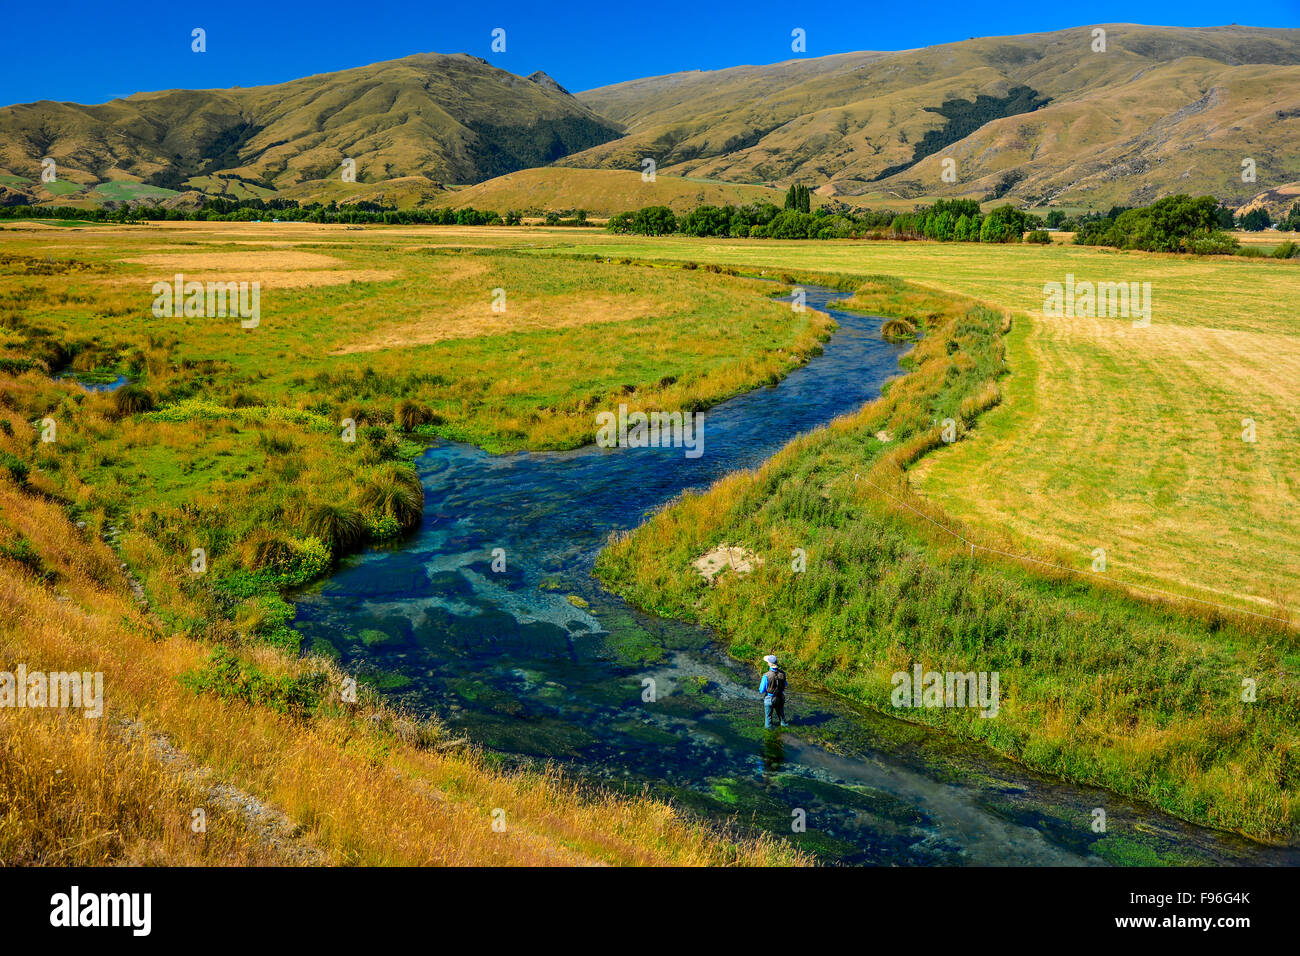 Southland Spring Creek, New Zealand - Stock Image